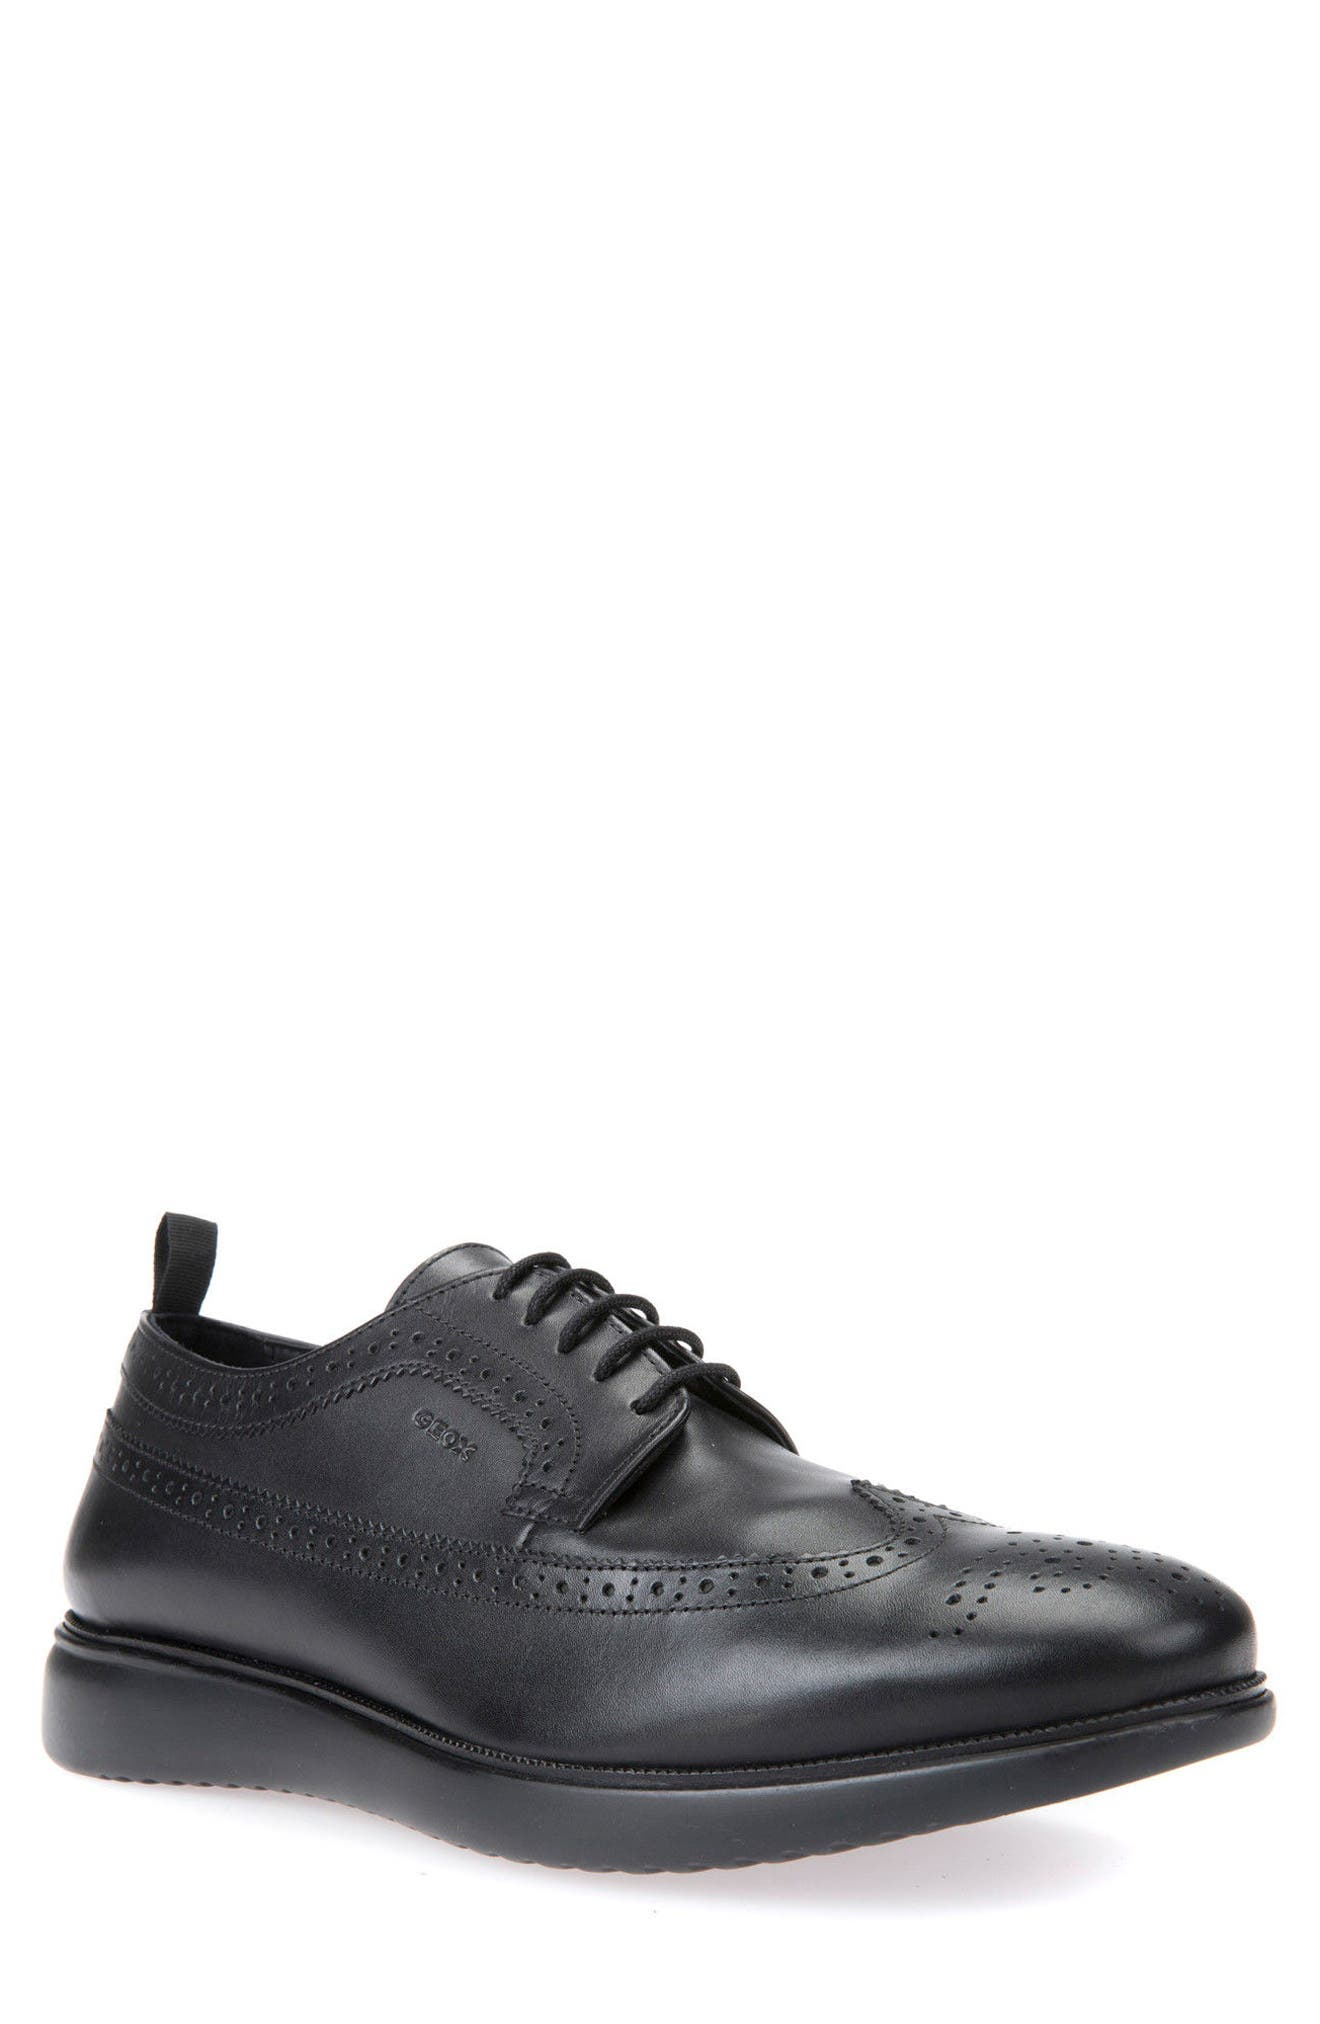 Winfred 3 Wingtip,                         Main,                         color, 001